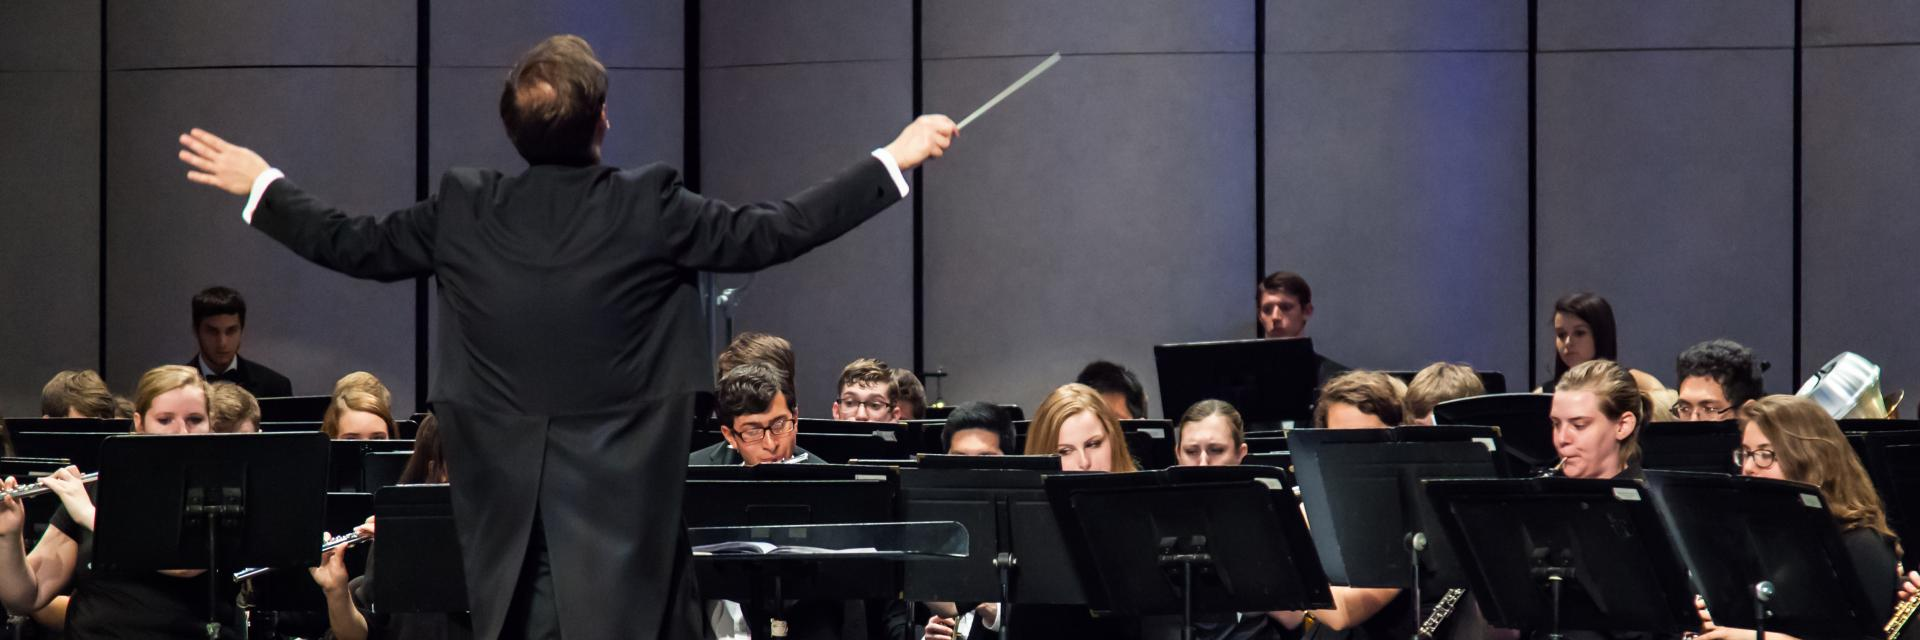 The Symphonic Band conductor directing students at a band concert.